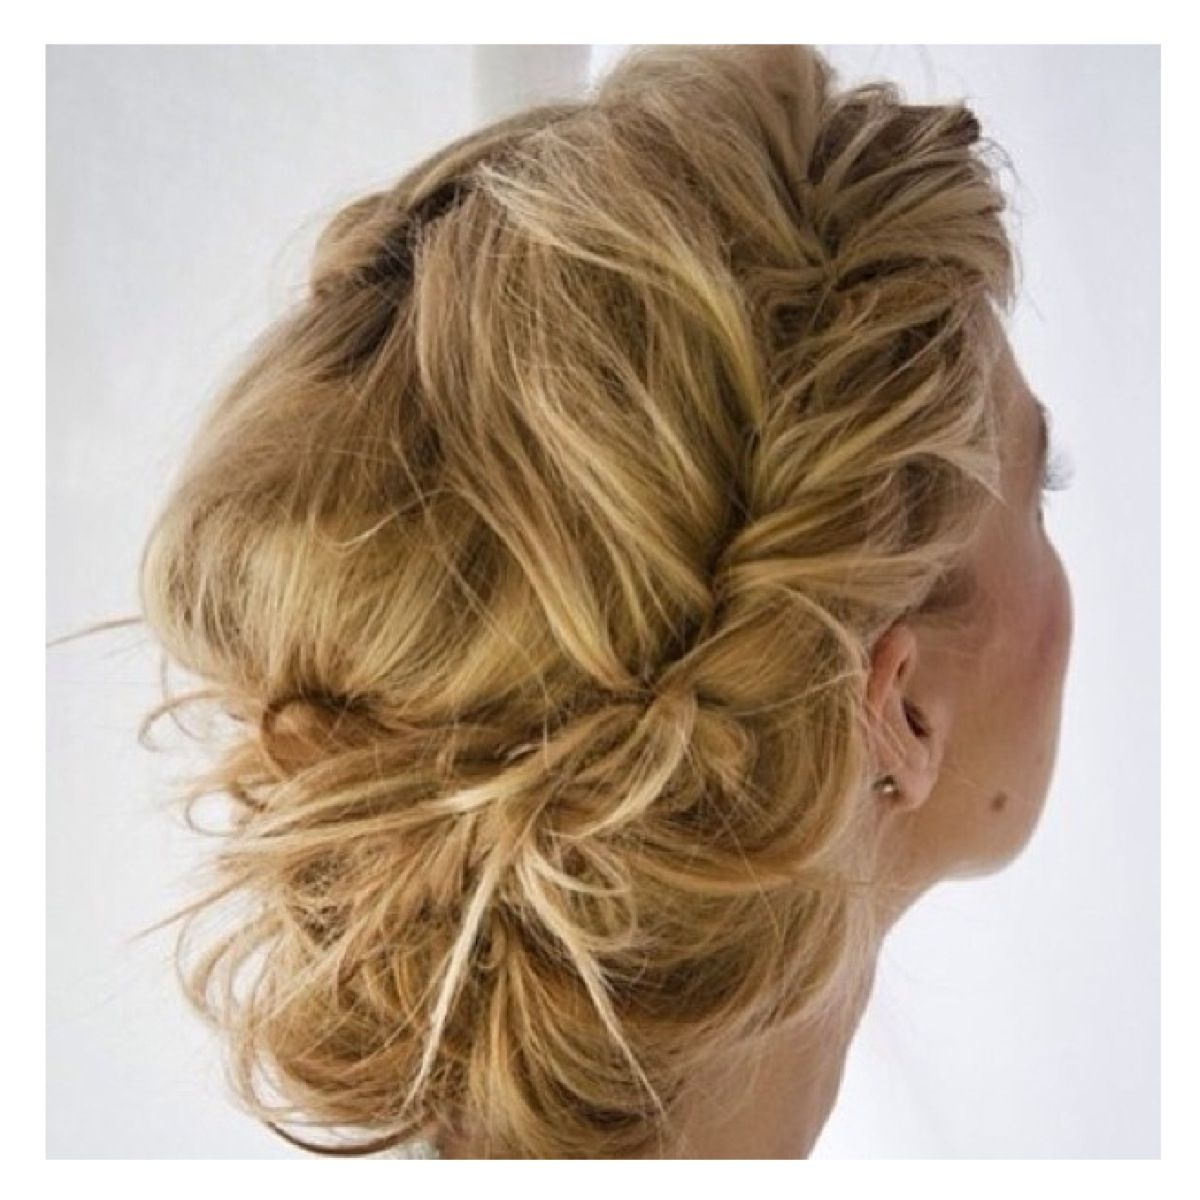 Another Great Messy Bun! #Wedding Hair! | HAiRdOs | Pinterest